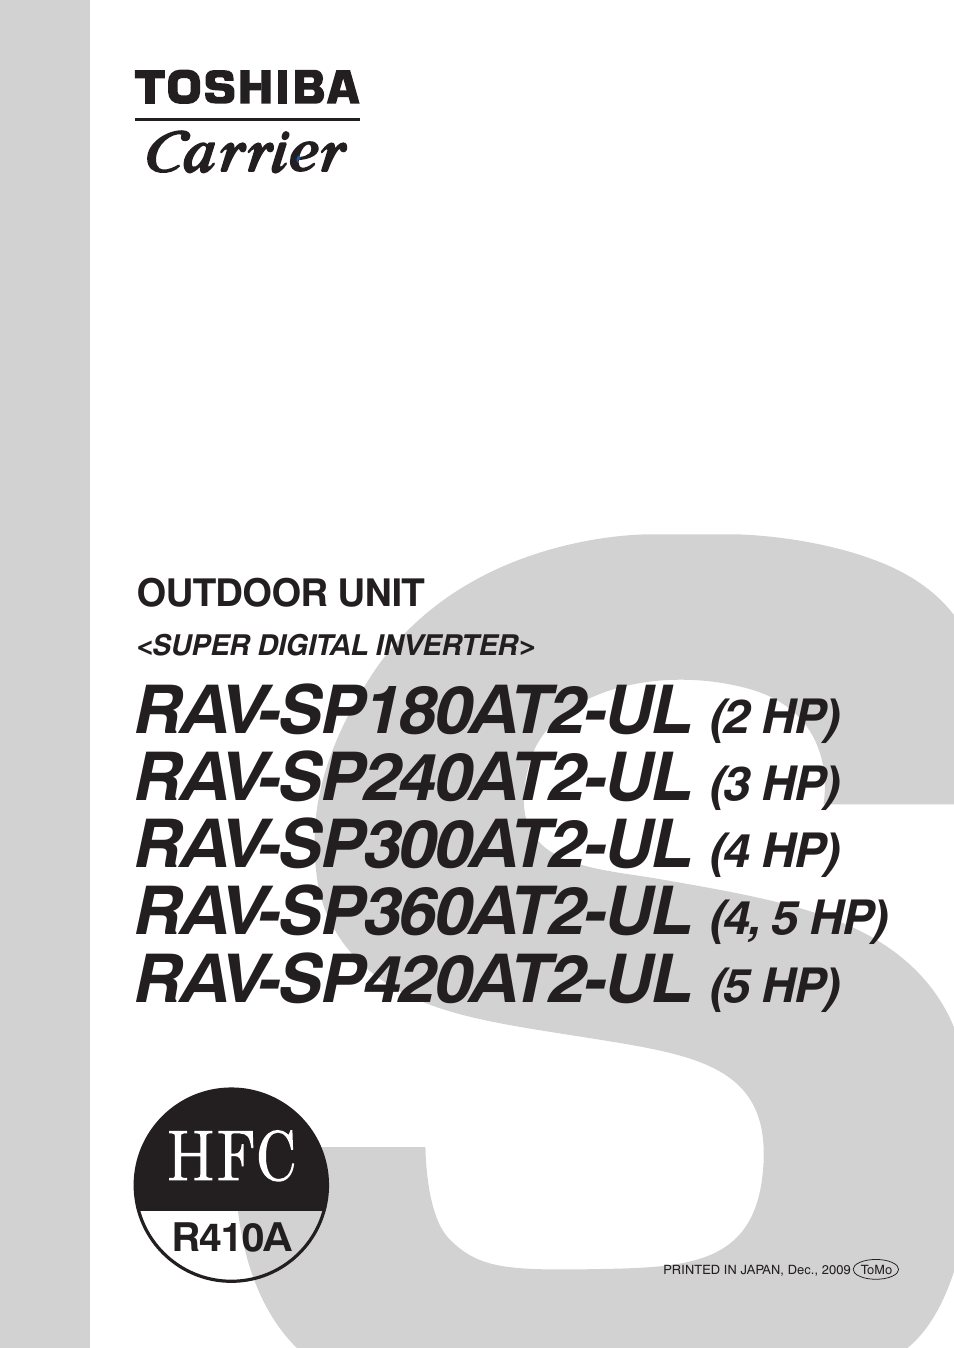 Toshiba Carrier Rav Sp300at2 Ul User Manual 116 Pages